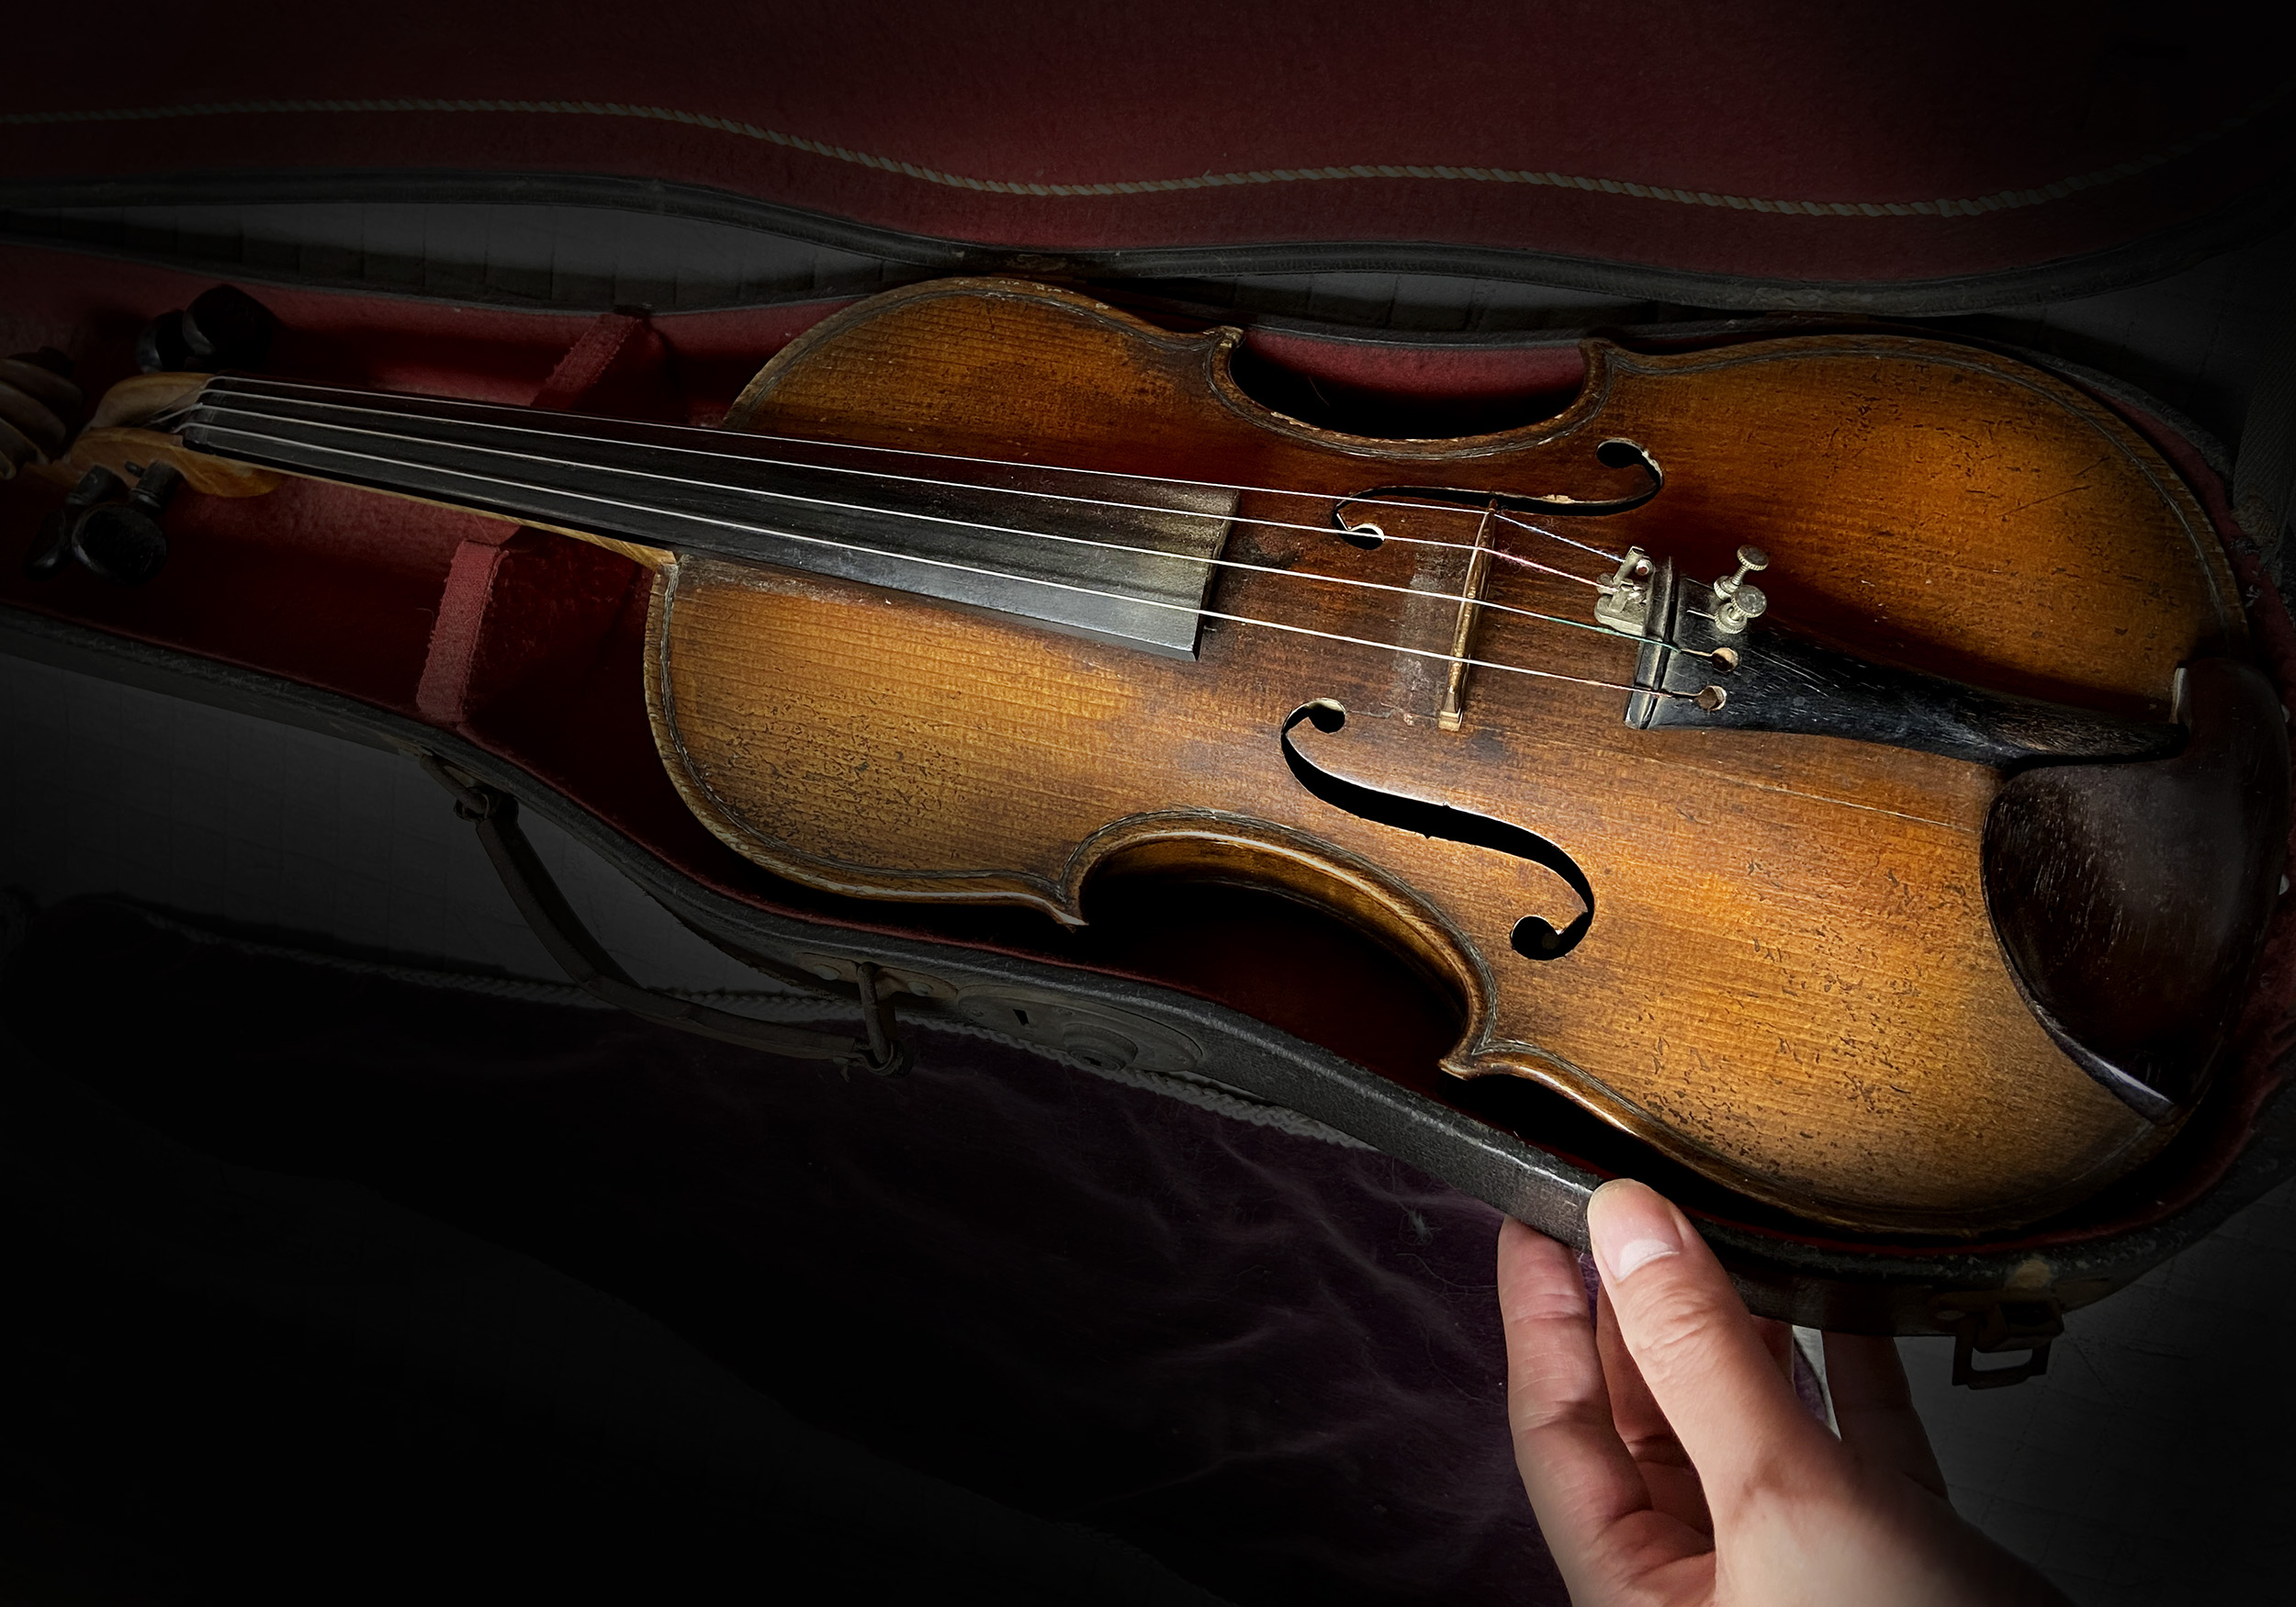 shadows with fake strad violin in case and hand holding it up